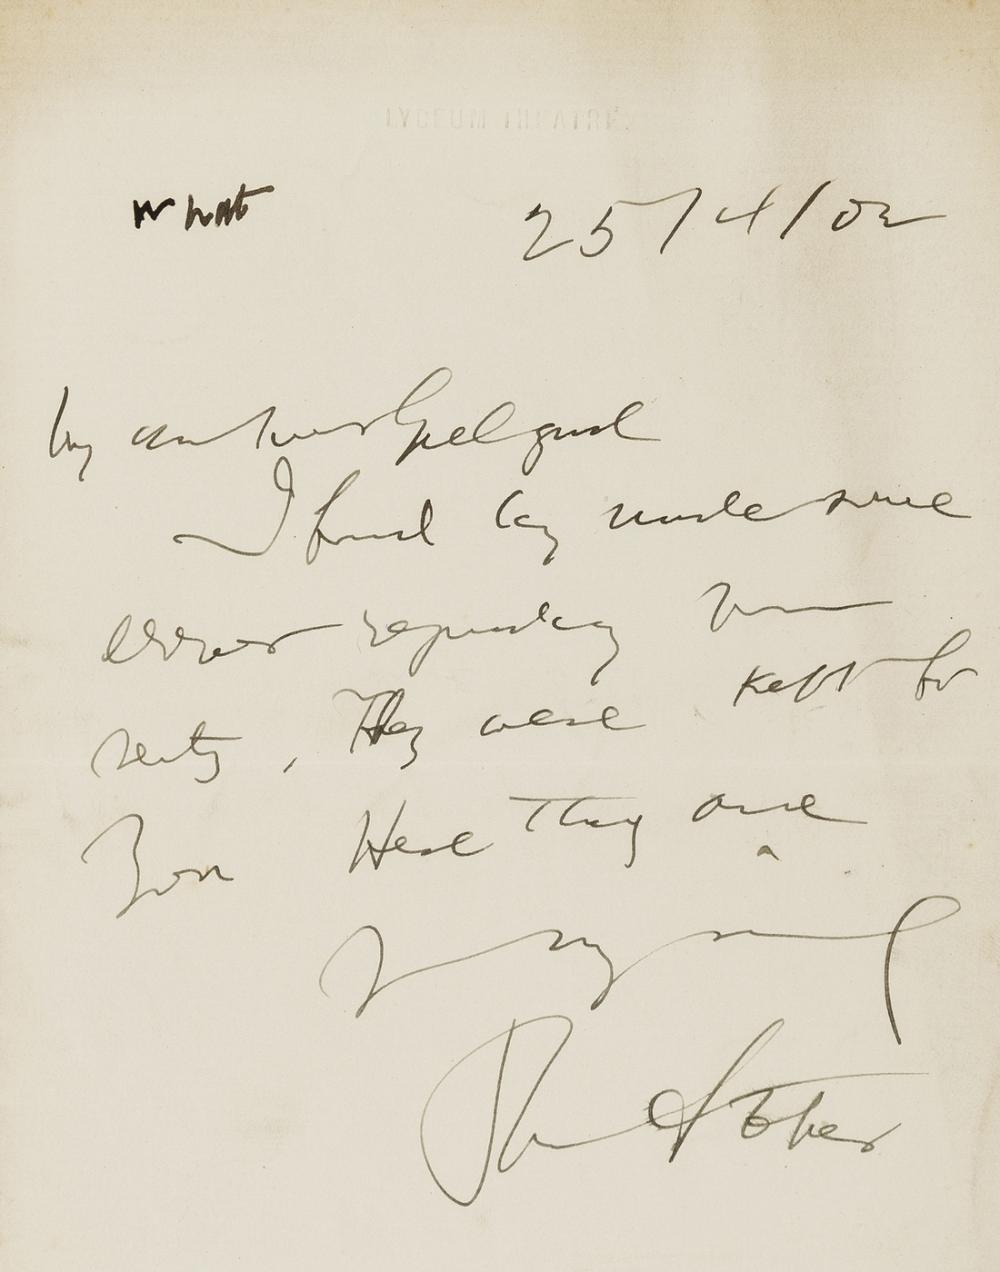 """Stoker (Bram) Autograph Letter signed """"My dear Mr [or ?Mrs] Gielgud"""", Lyceum Theatre, 25th April 1902, """"I find by... some error regarding your seats, they were kept for you. Here they are..."""", 1902."""